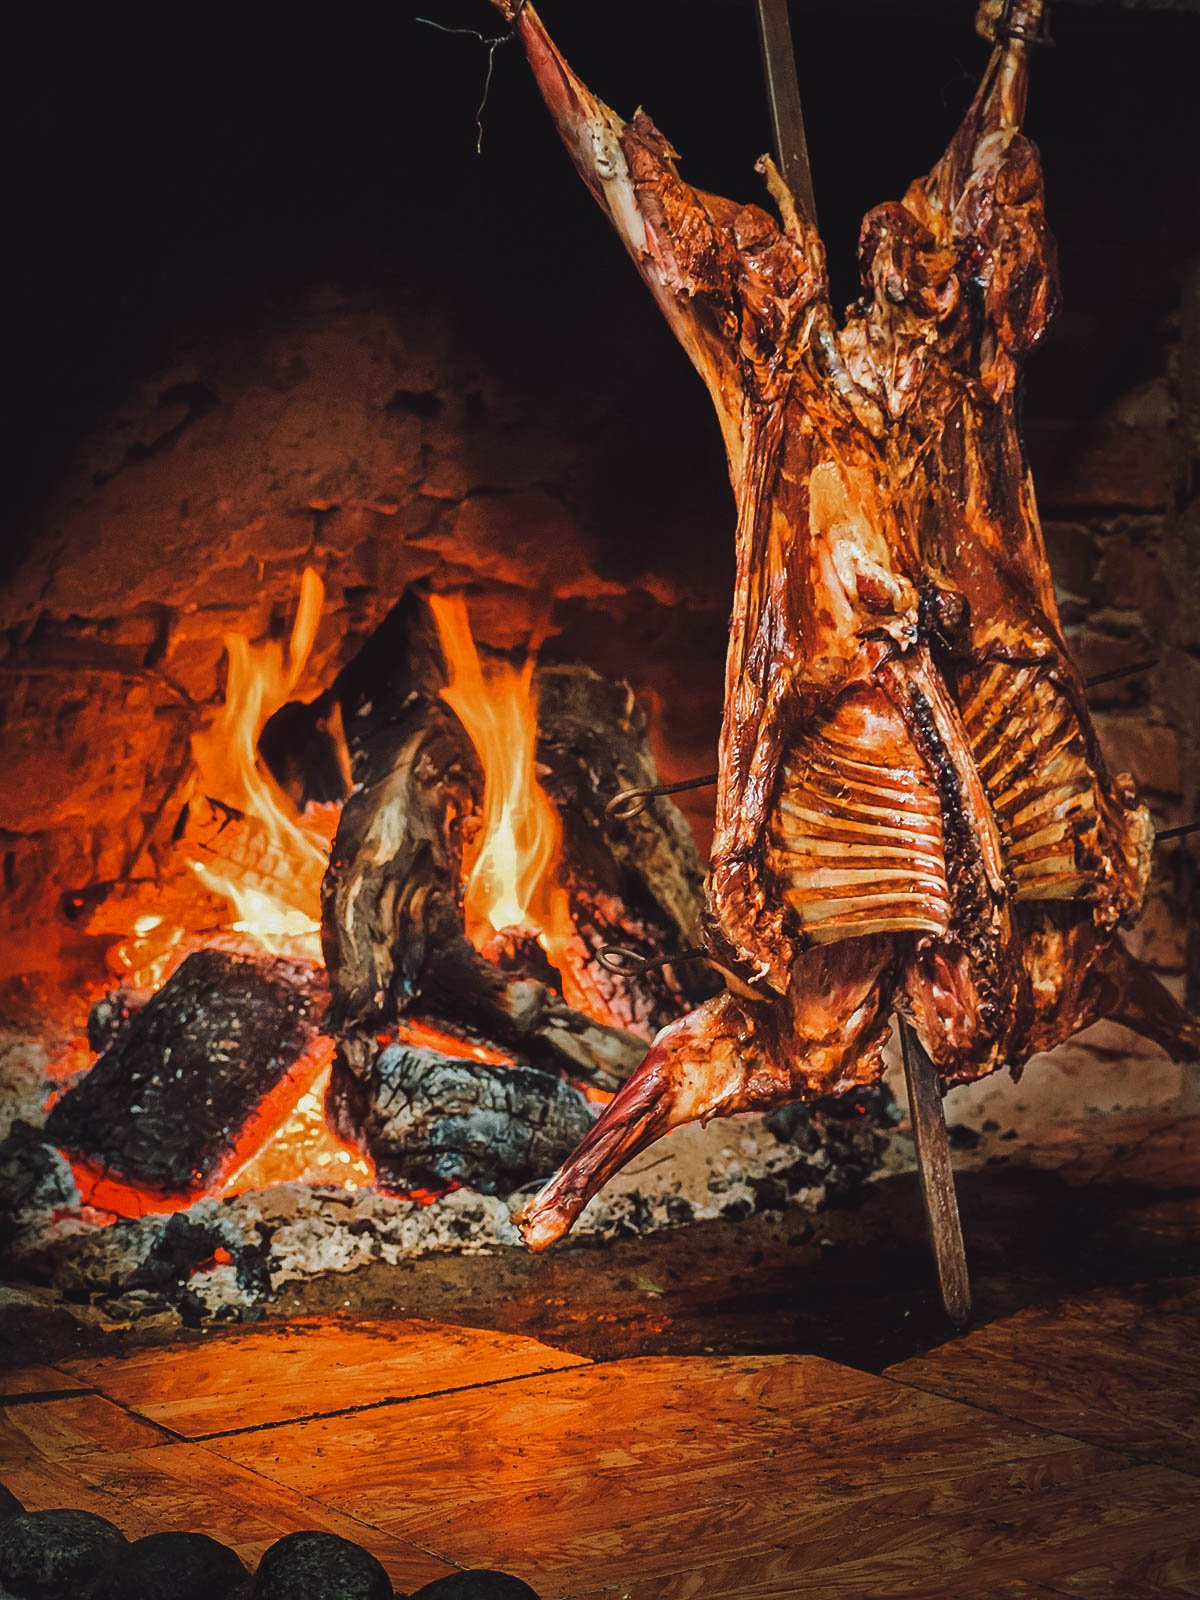 Cordero Patagonico, a roasted lamb meat dish popular in southern Argentina